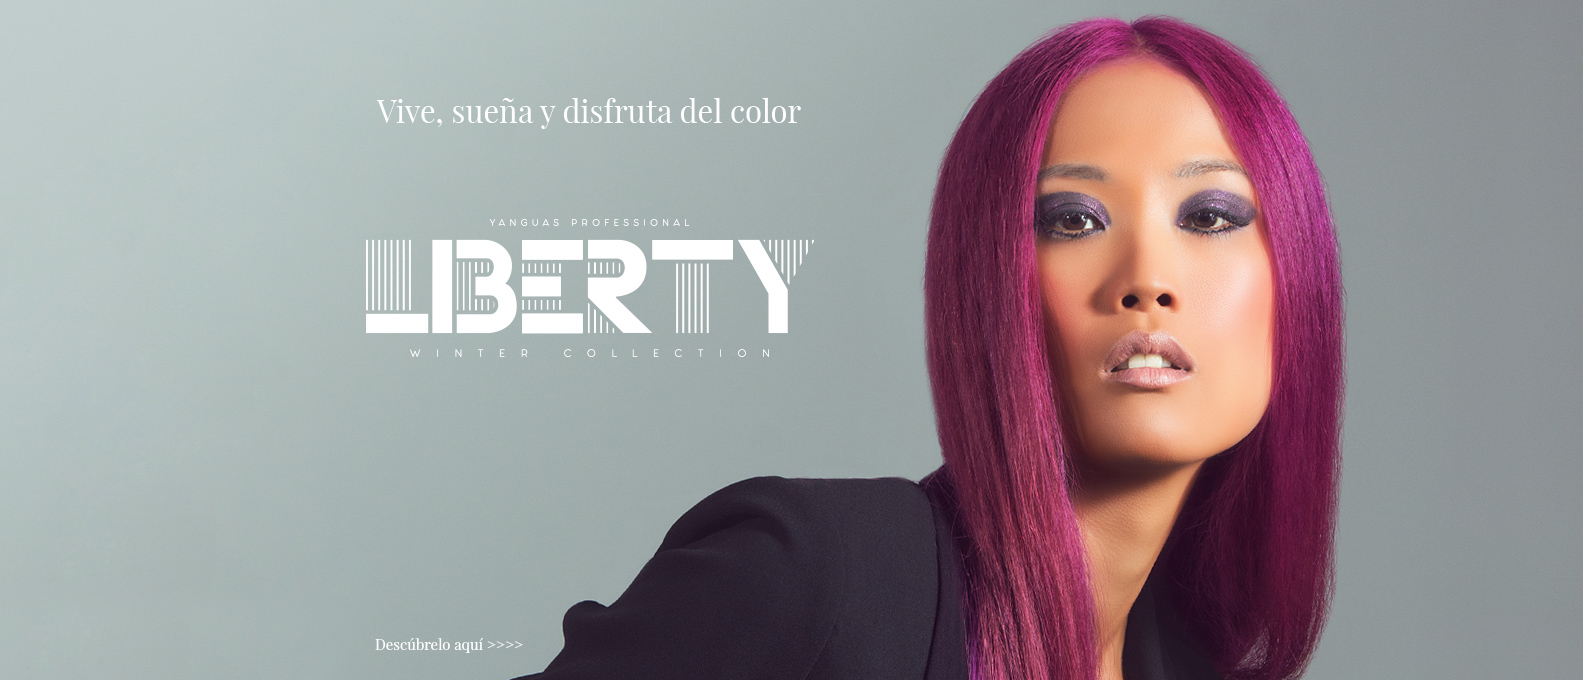 Descubre LIberty de Yanguas Professional